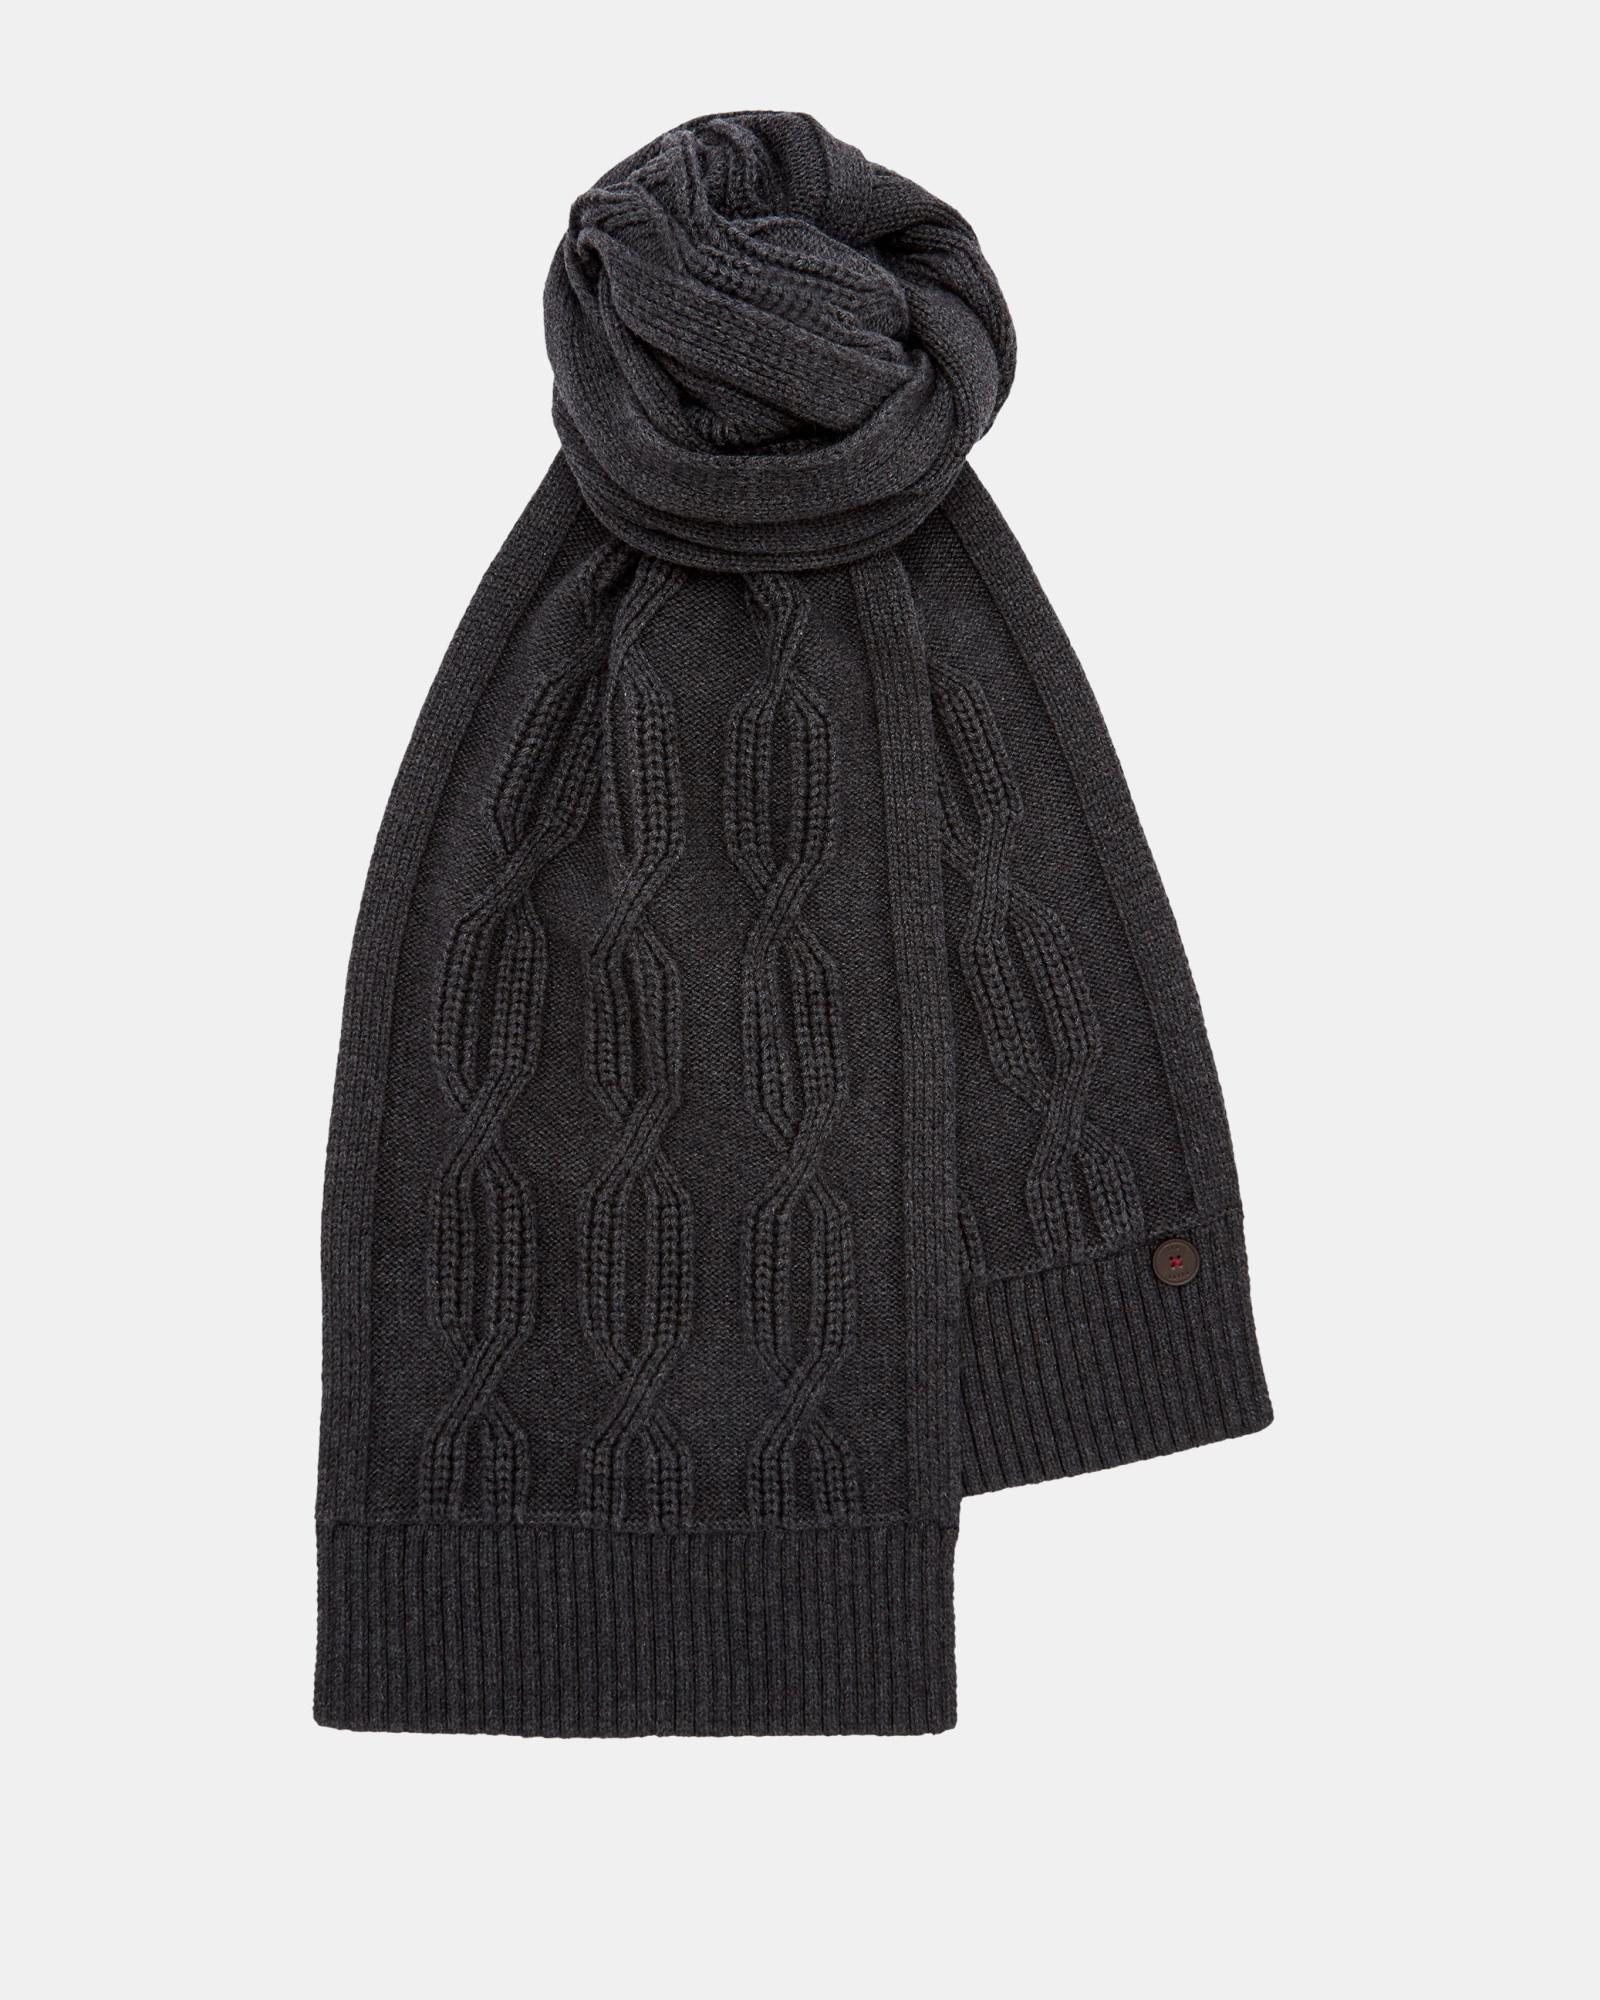 8e78eeebc430 Ted Baker Cable Knit Scarf in Gray for Men - Lyst